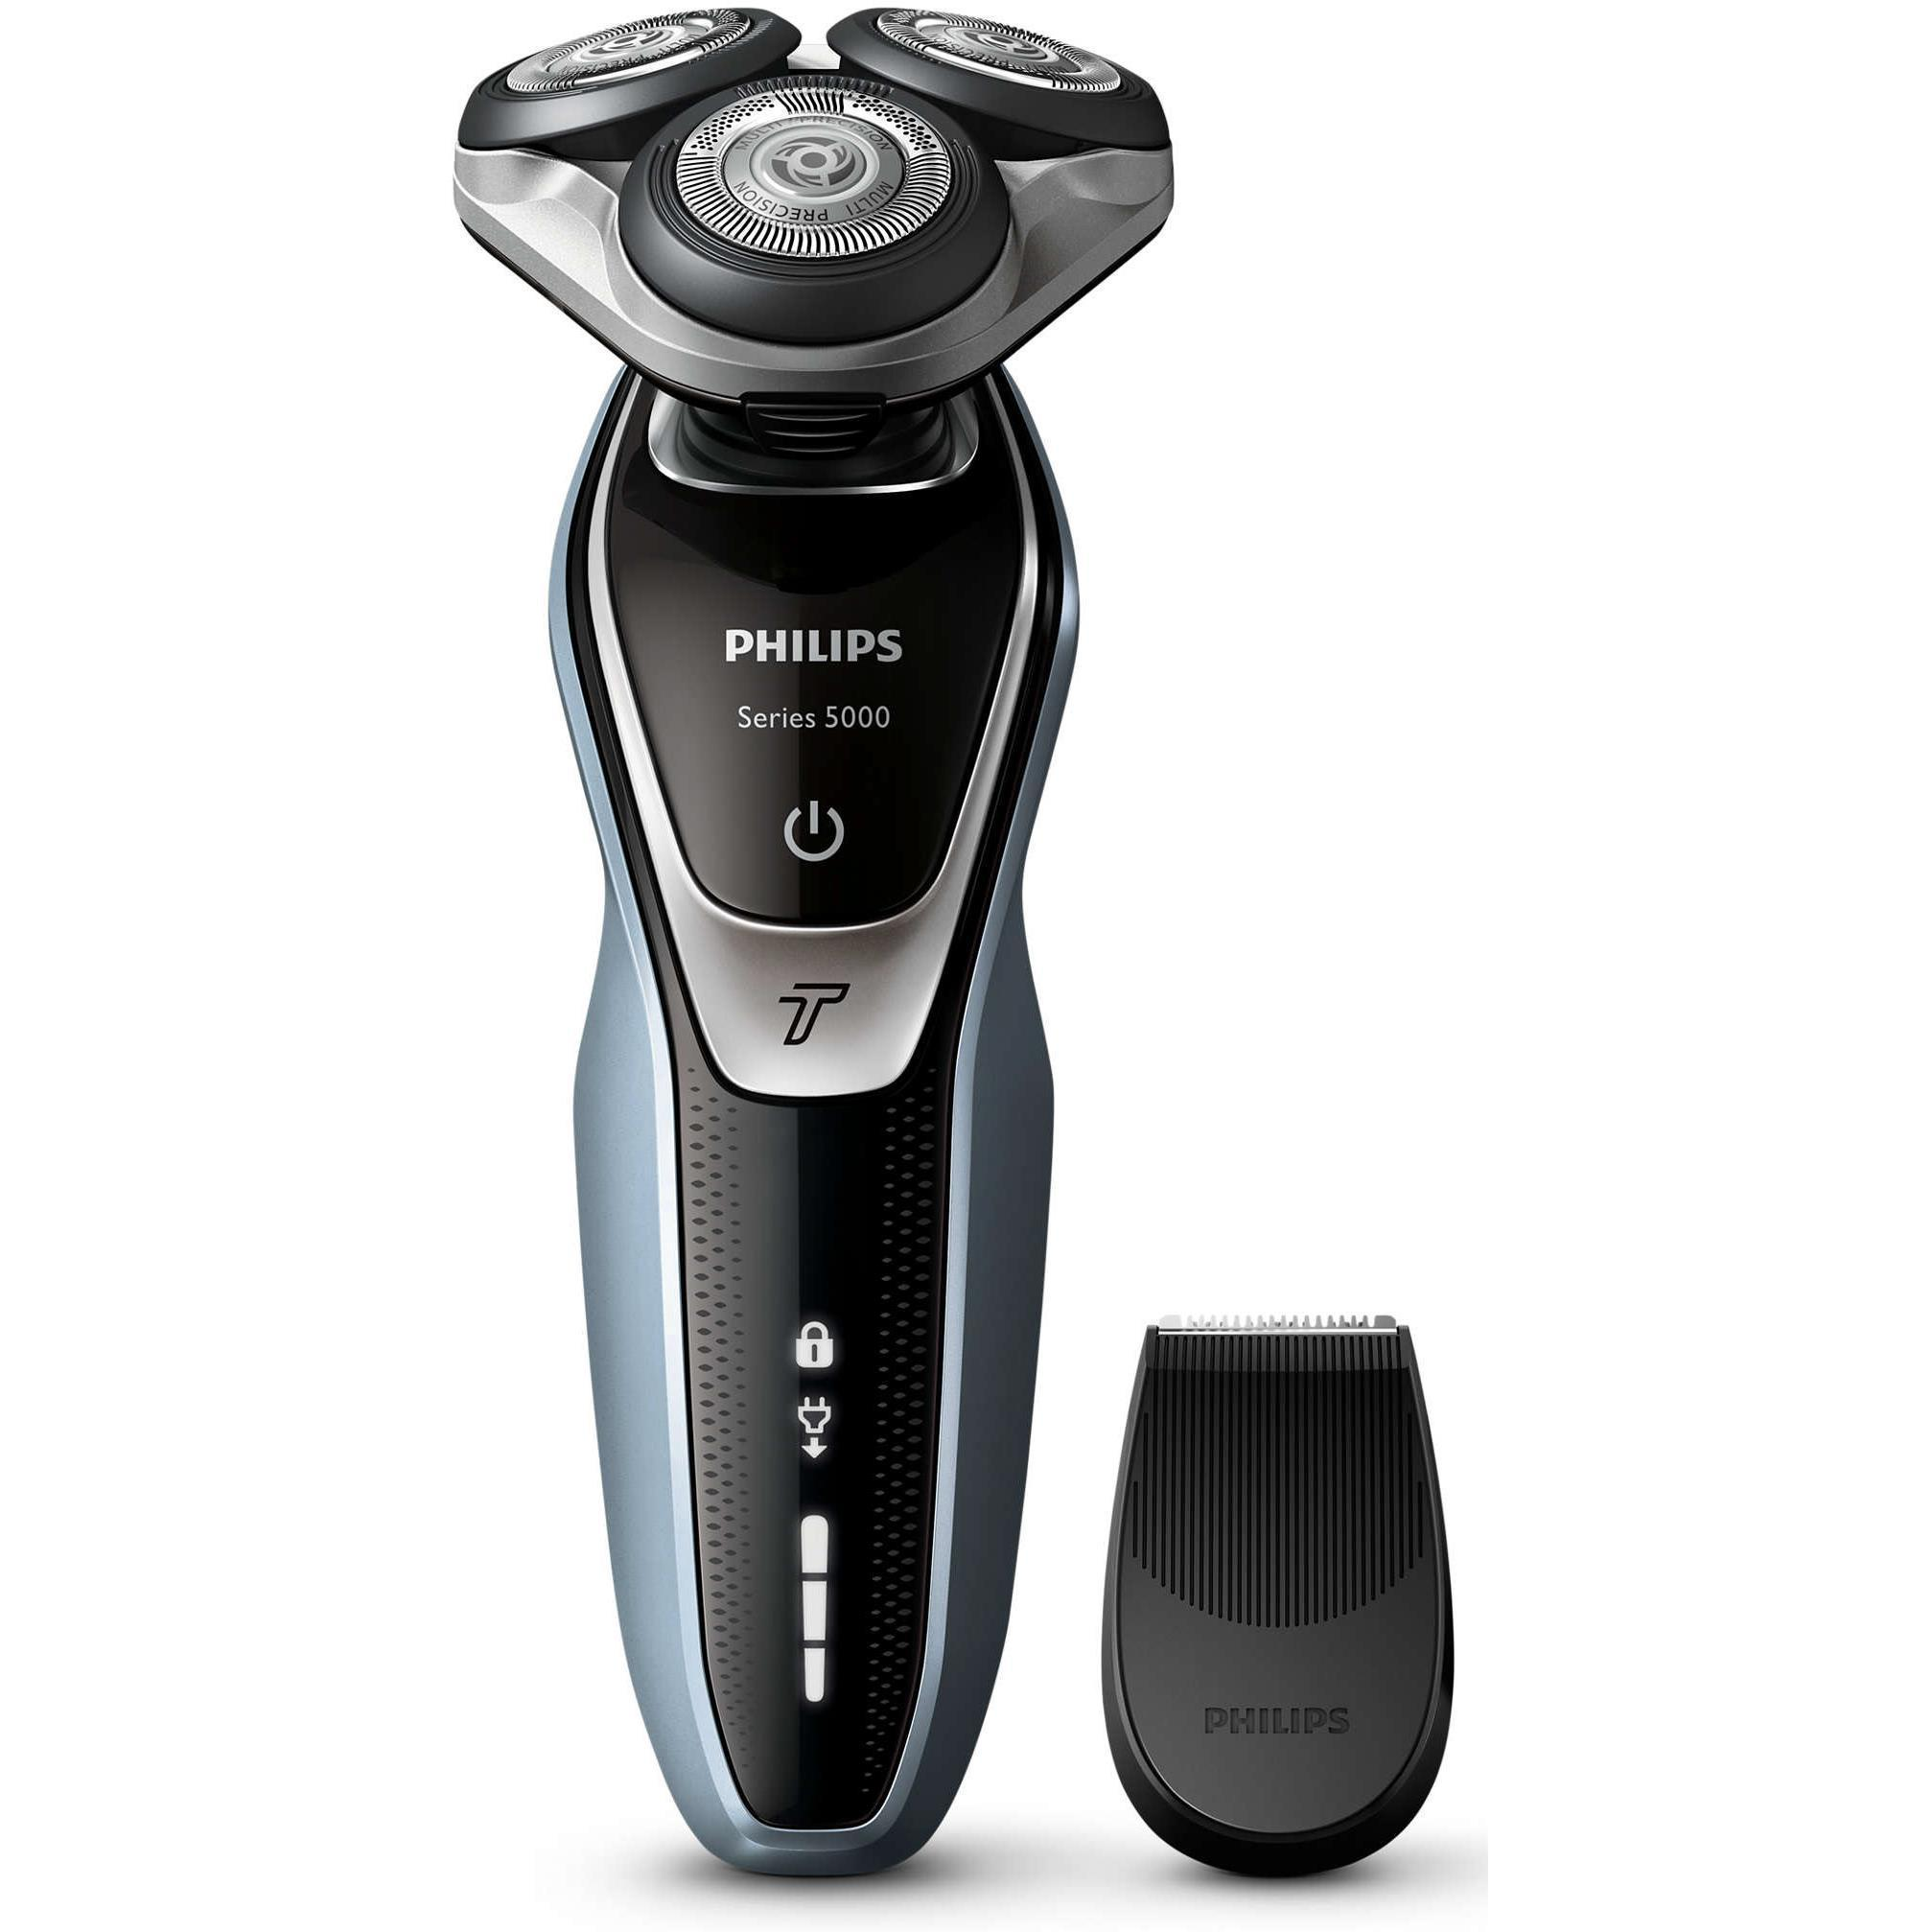 Philips Series 5000 Wet and Dry Electric Shaver